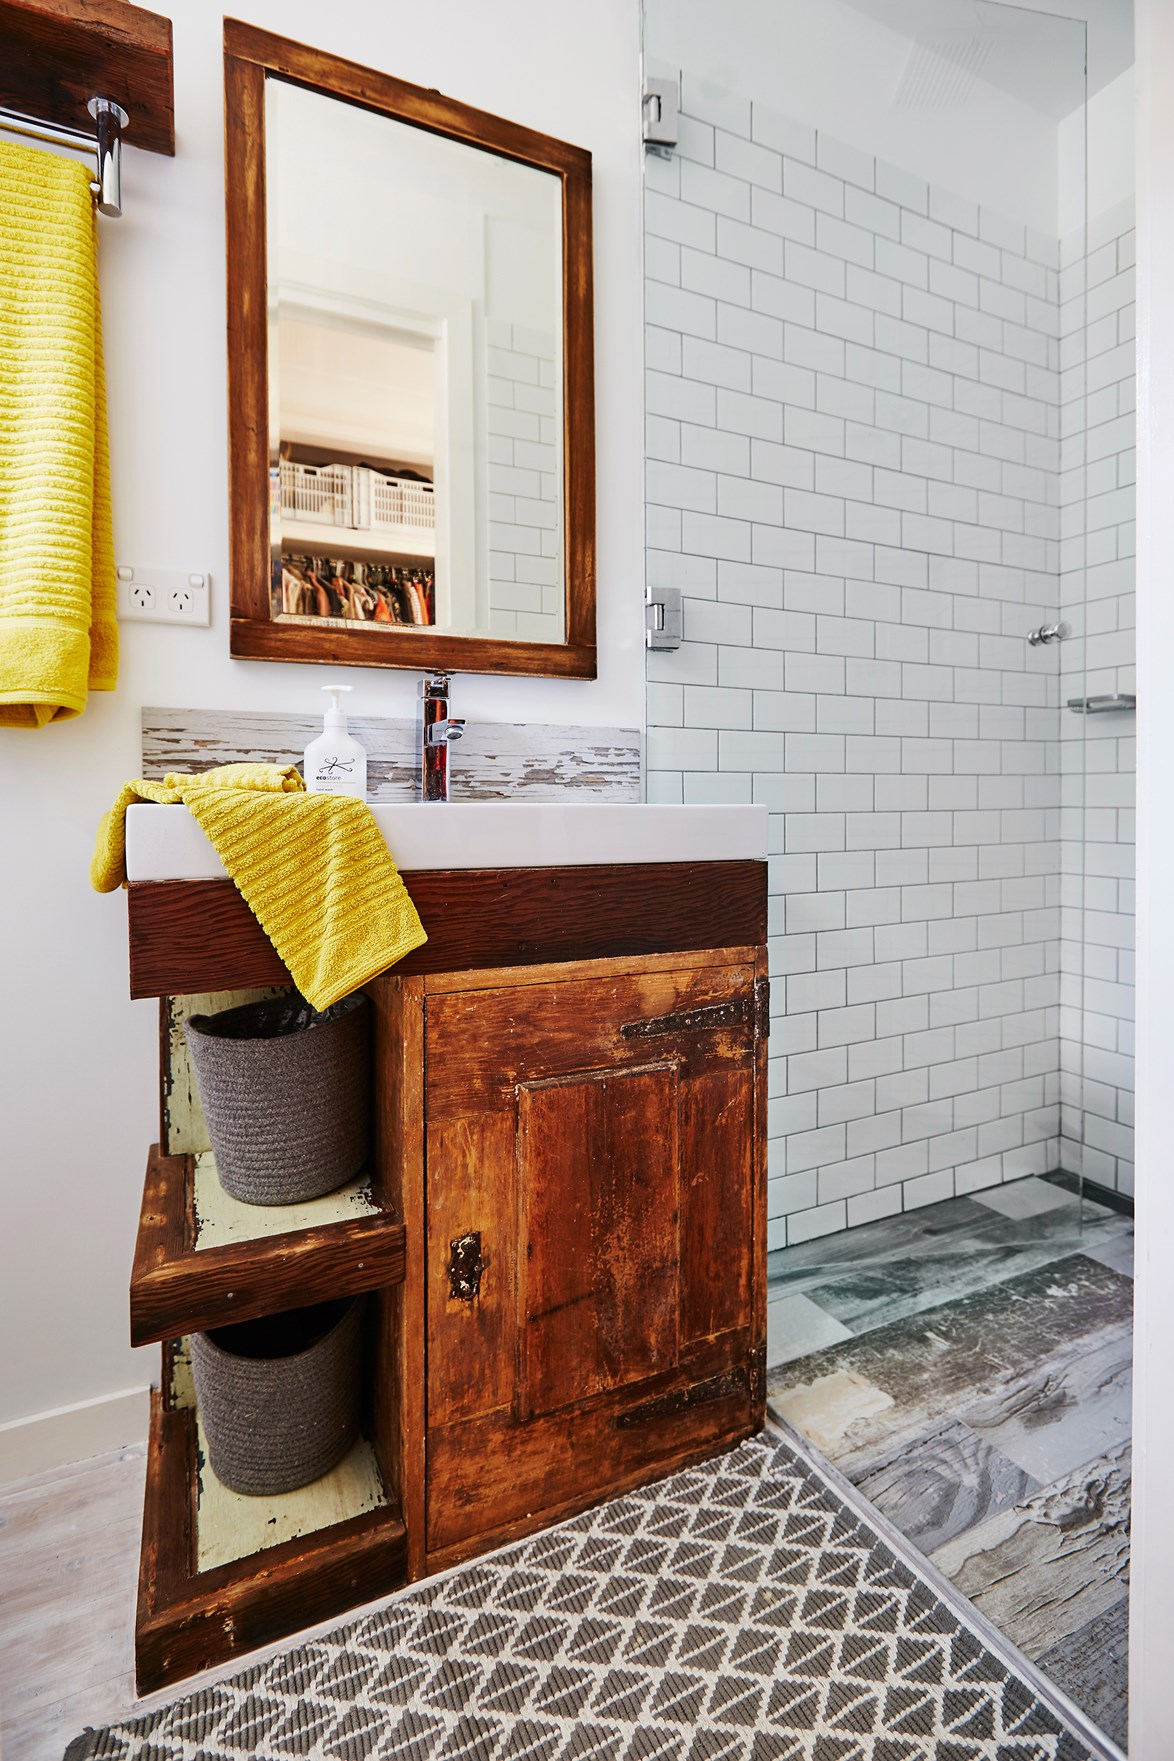 """This unique, rustic vanity in a [renovated coastal style home](https://www.homestolove.com.au/modern-rustic-style-on-a-budget-4487